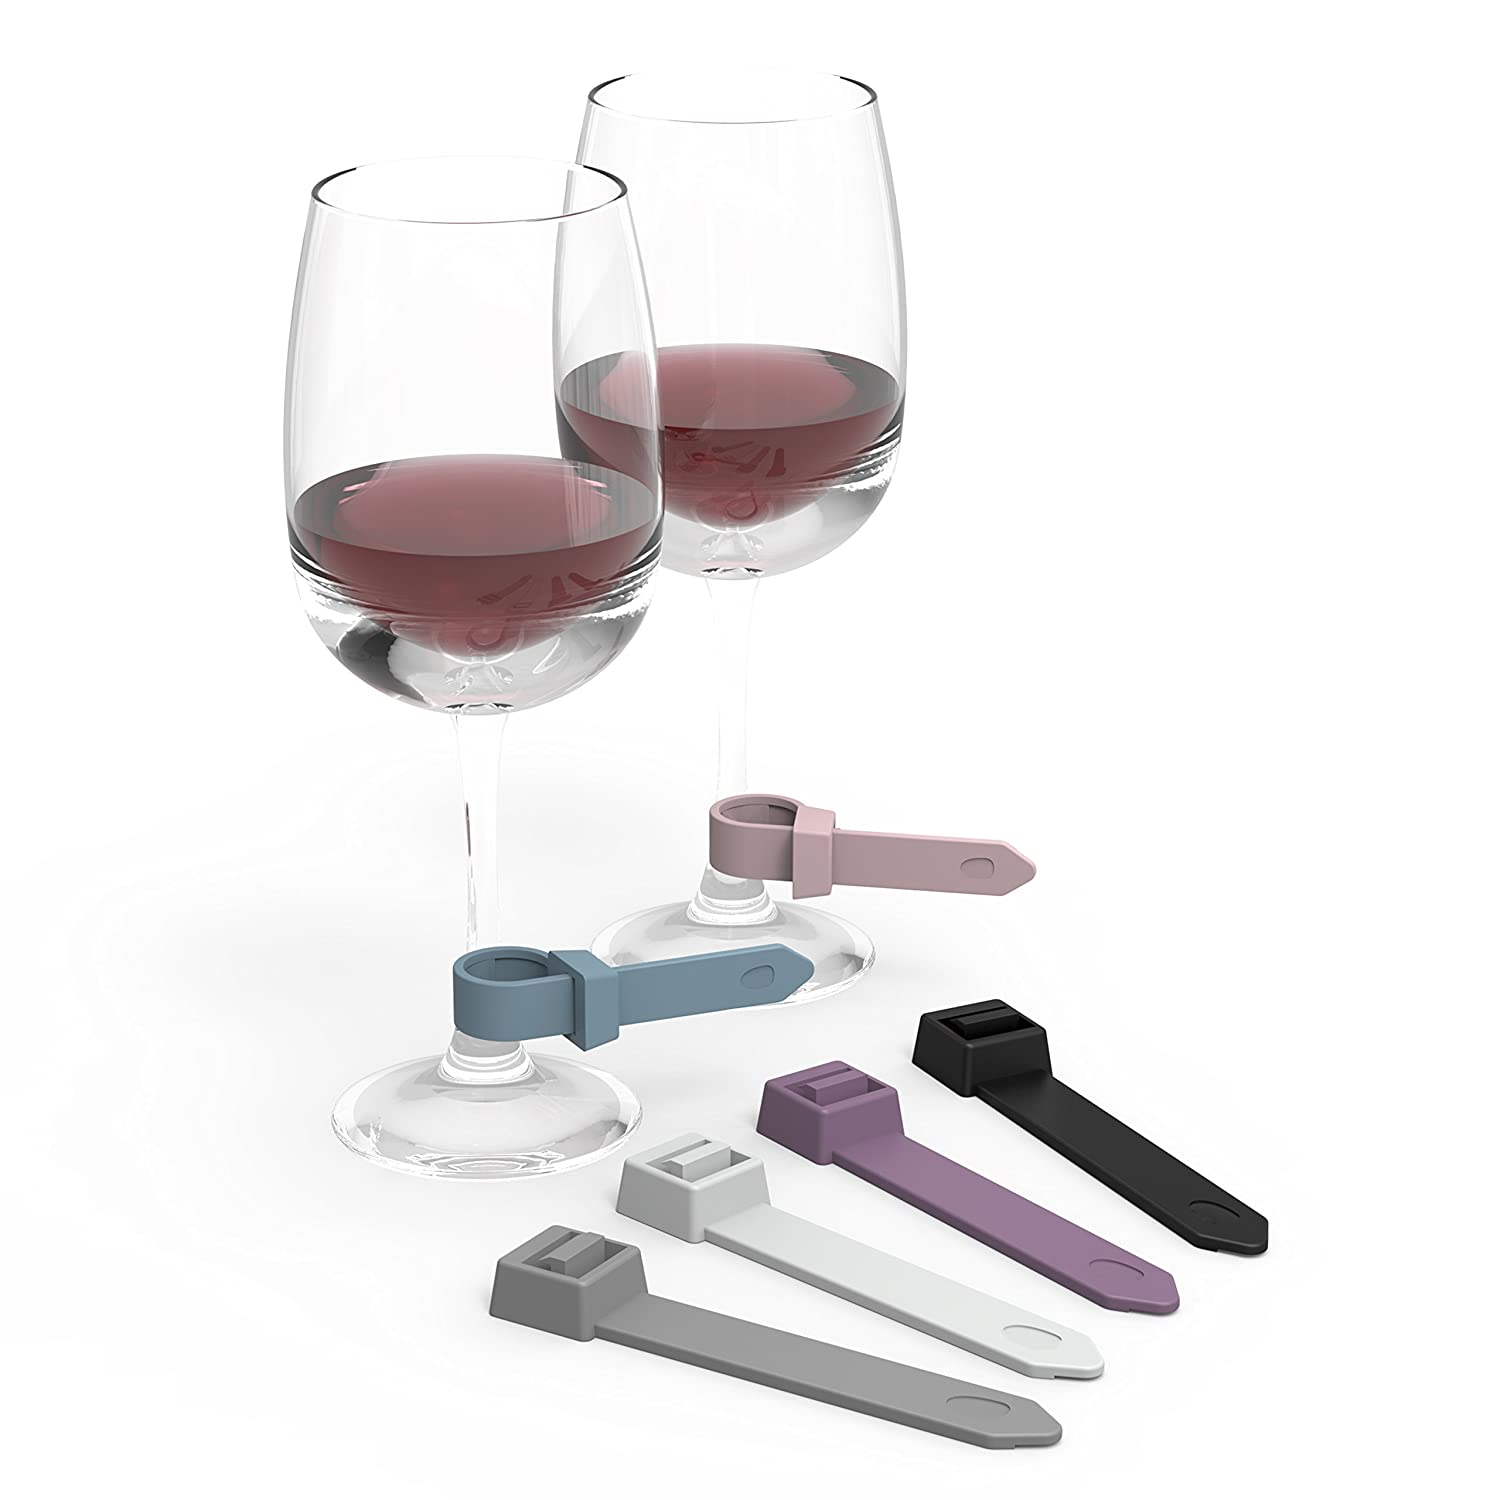 2-Pack Wine Glass Charms and Drink Markers in Elegant Ring & Chic Cable Tie Designs to Grip and Mark Wine Glasses and Stemware (12 Pc. Count) Home and AboveTM COMINHKPR145379